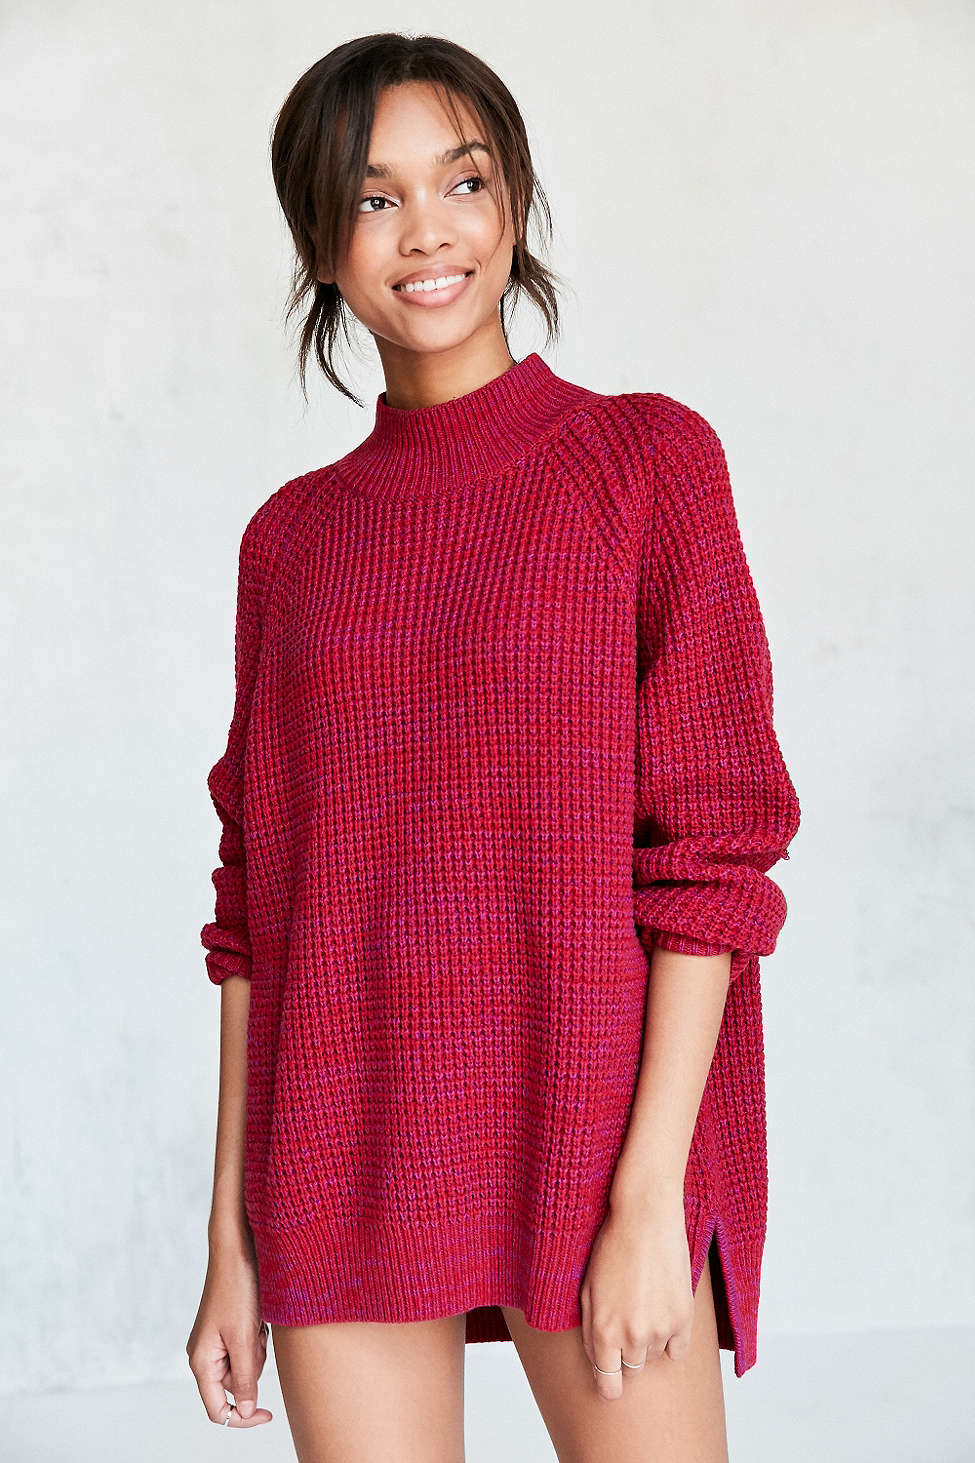 d78fdf2a8 The sweater